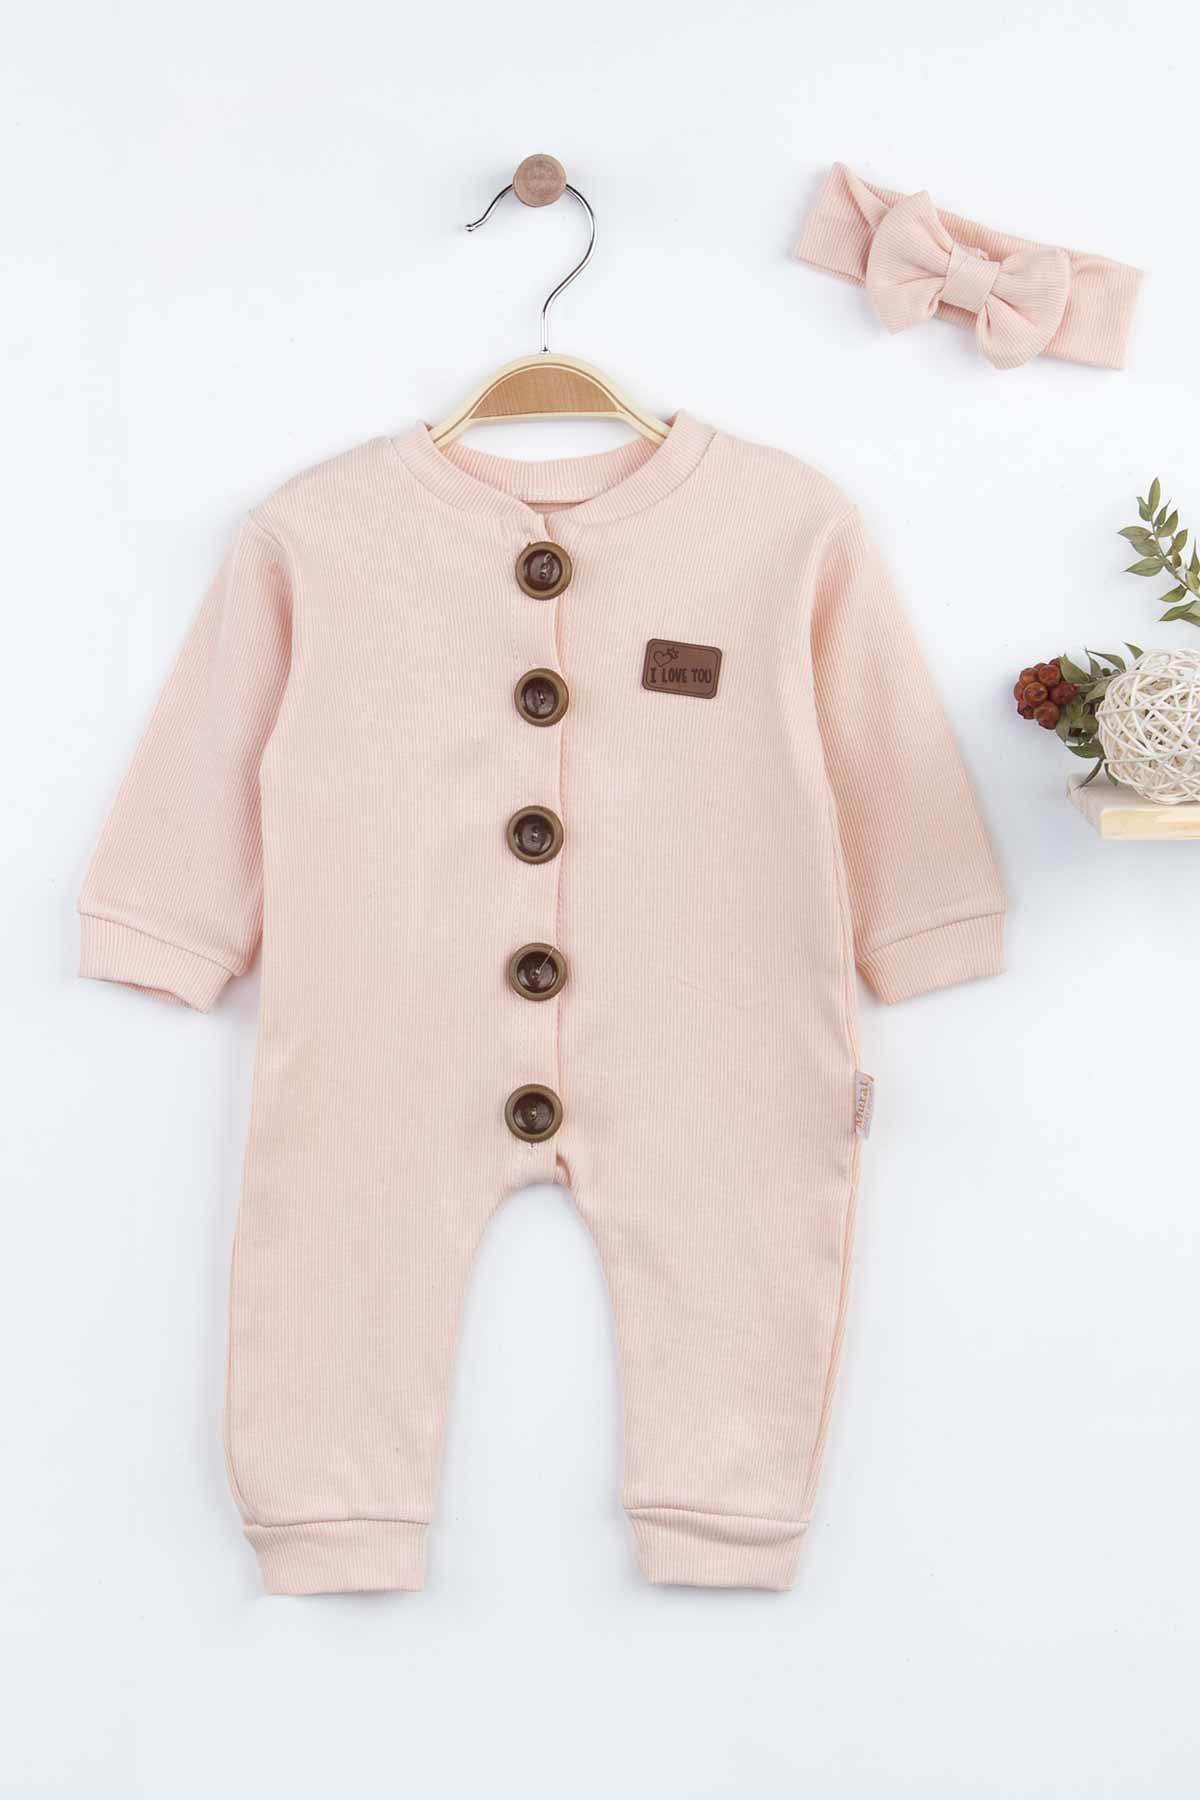 Powder Pink Baby Girl Rompers Babies Clothes Set Outfit Cotton Comfortable Underwear Hair Bandanna 2021 New Season Girls Models